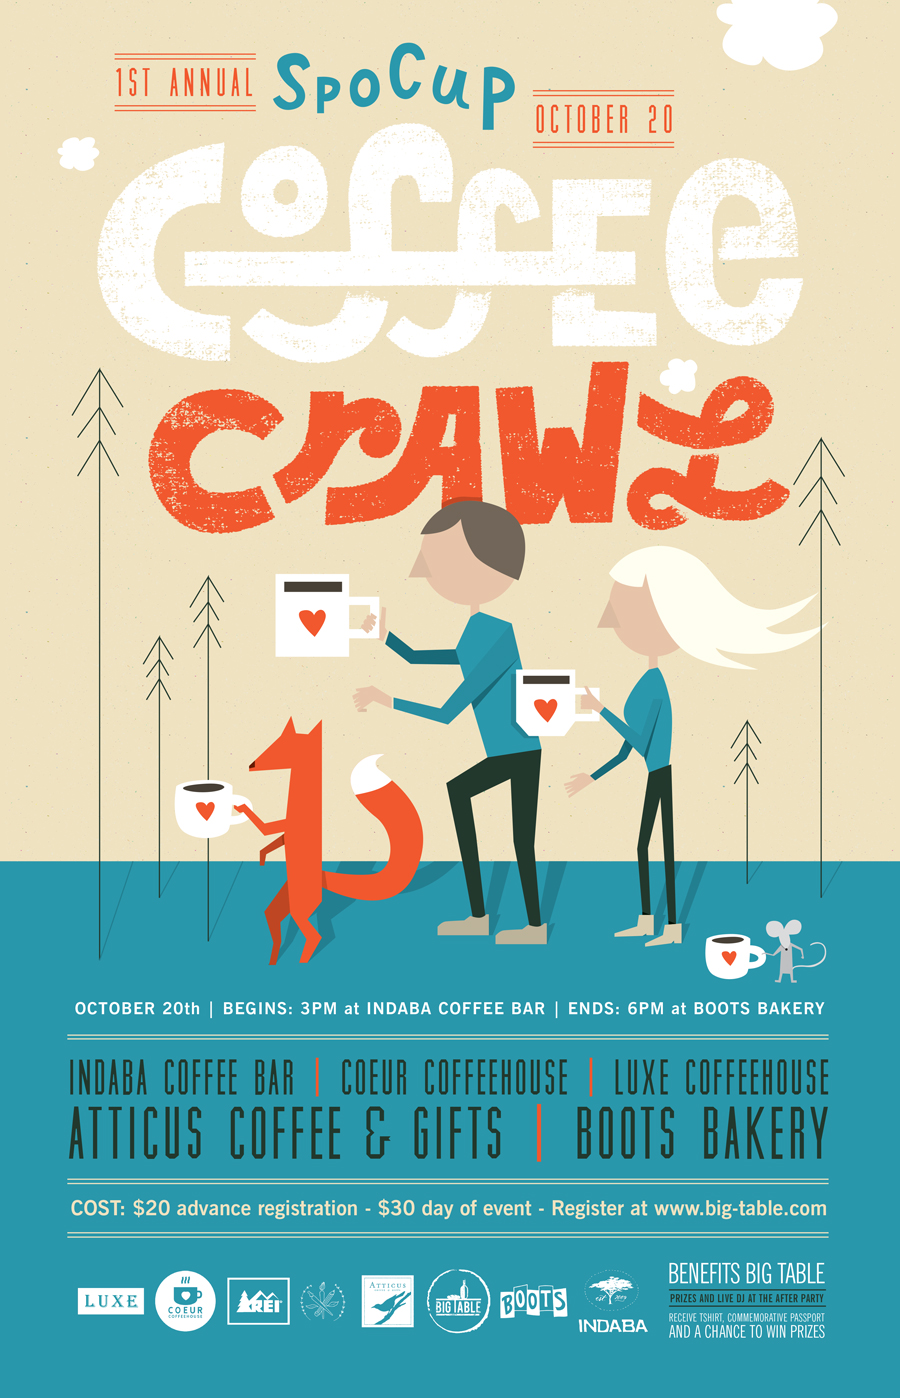 Coffee Crawl Spokane event branding by Karli Ingersoll